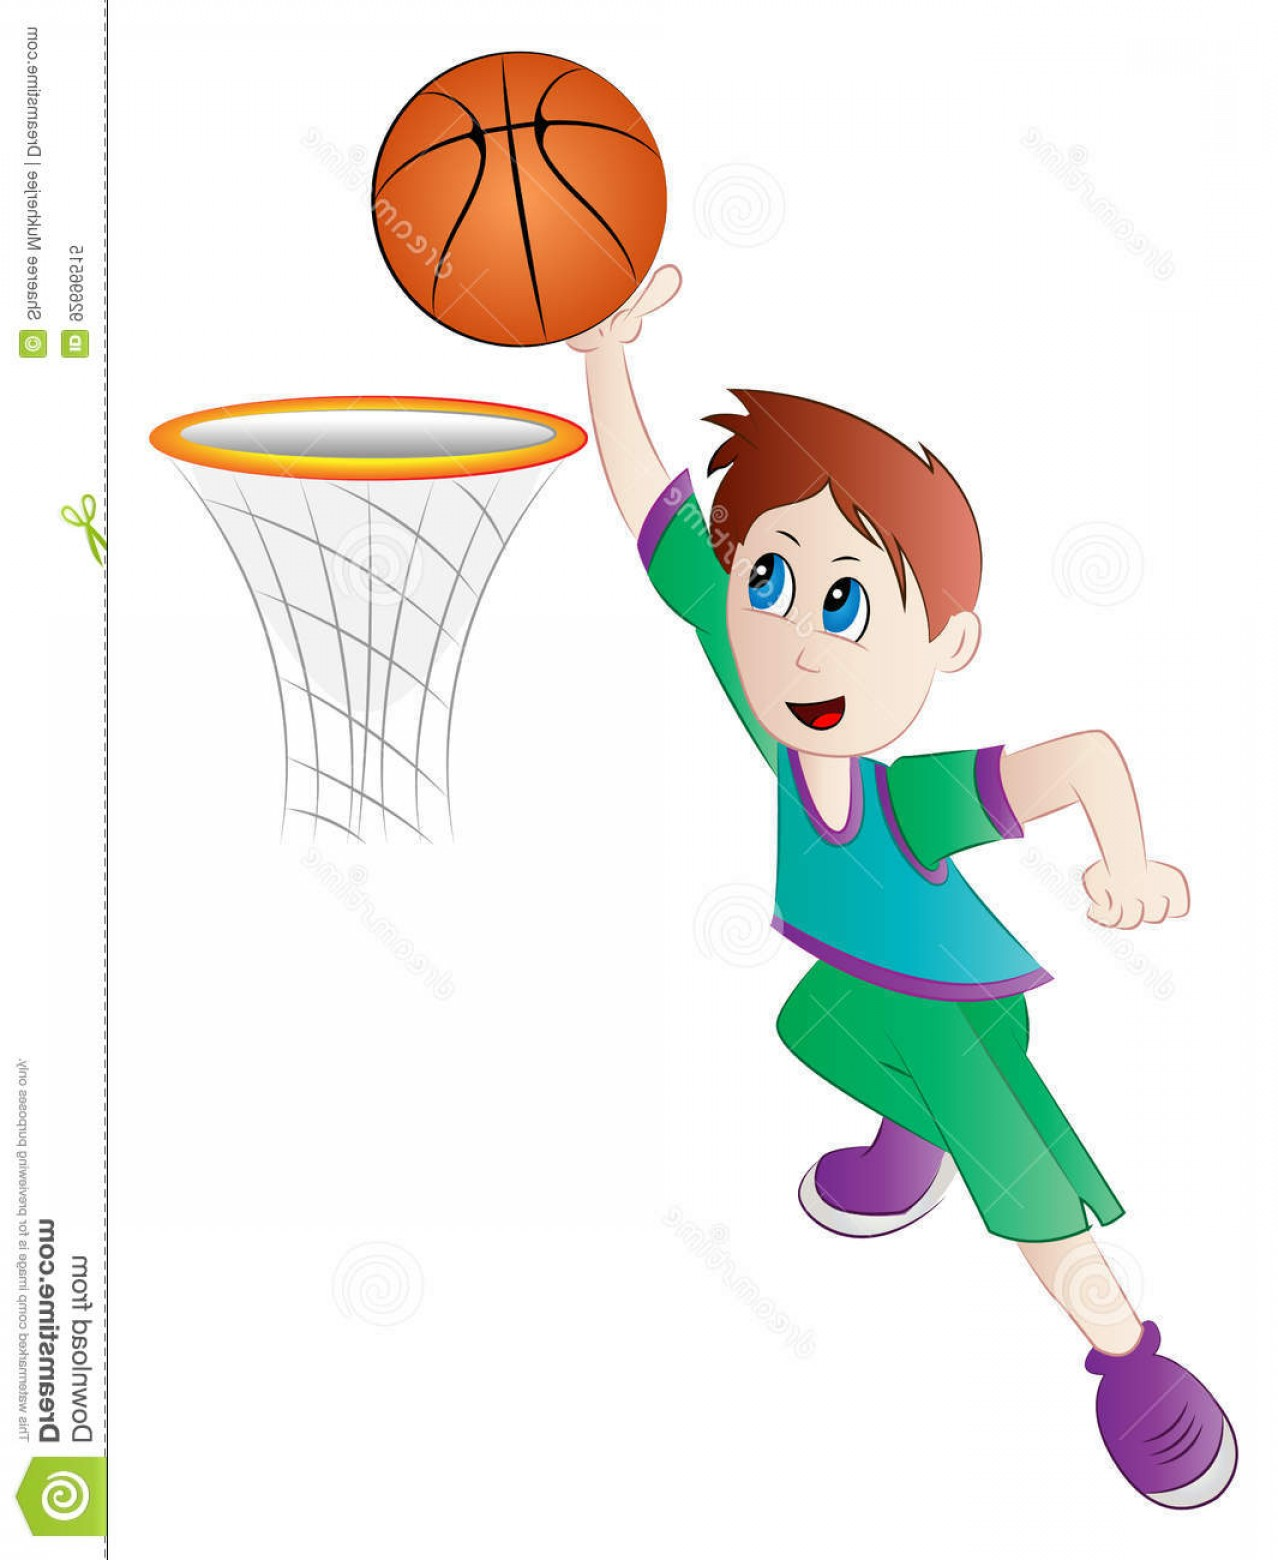 Cartoon Basketball Vector: Stock Illustration Cartoon Boy Playing Basketball Vector Illustration Clip Art Player Image